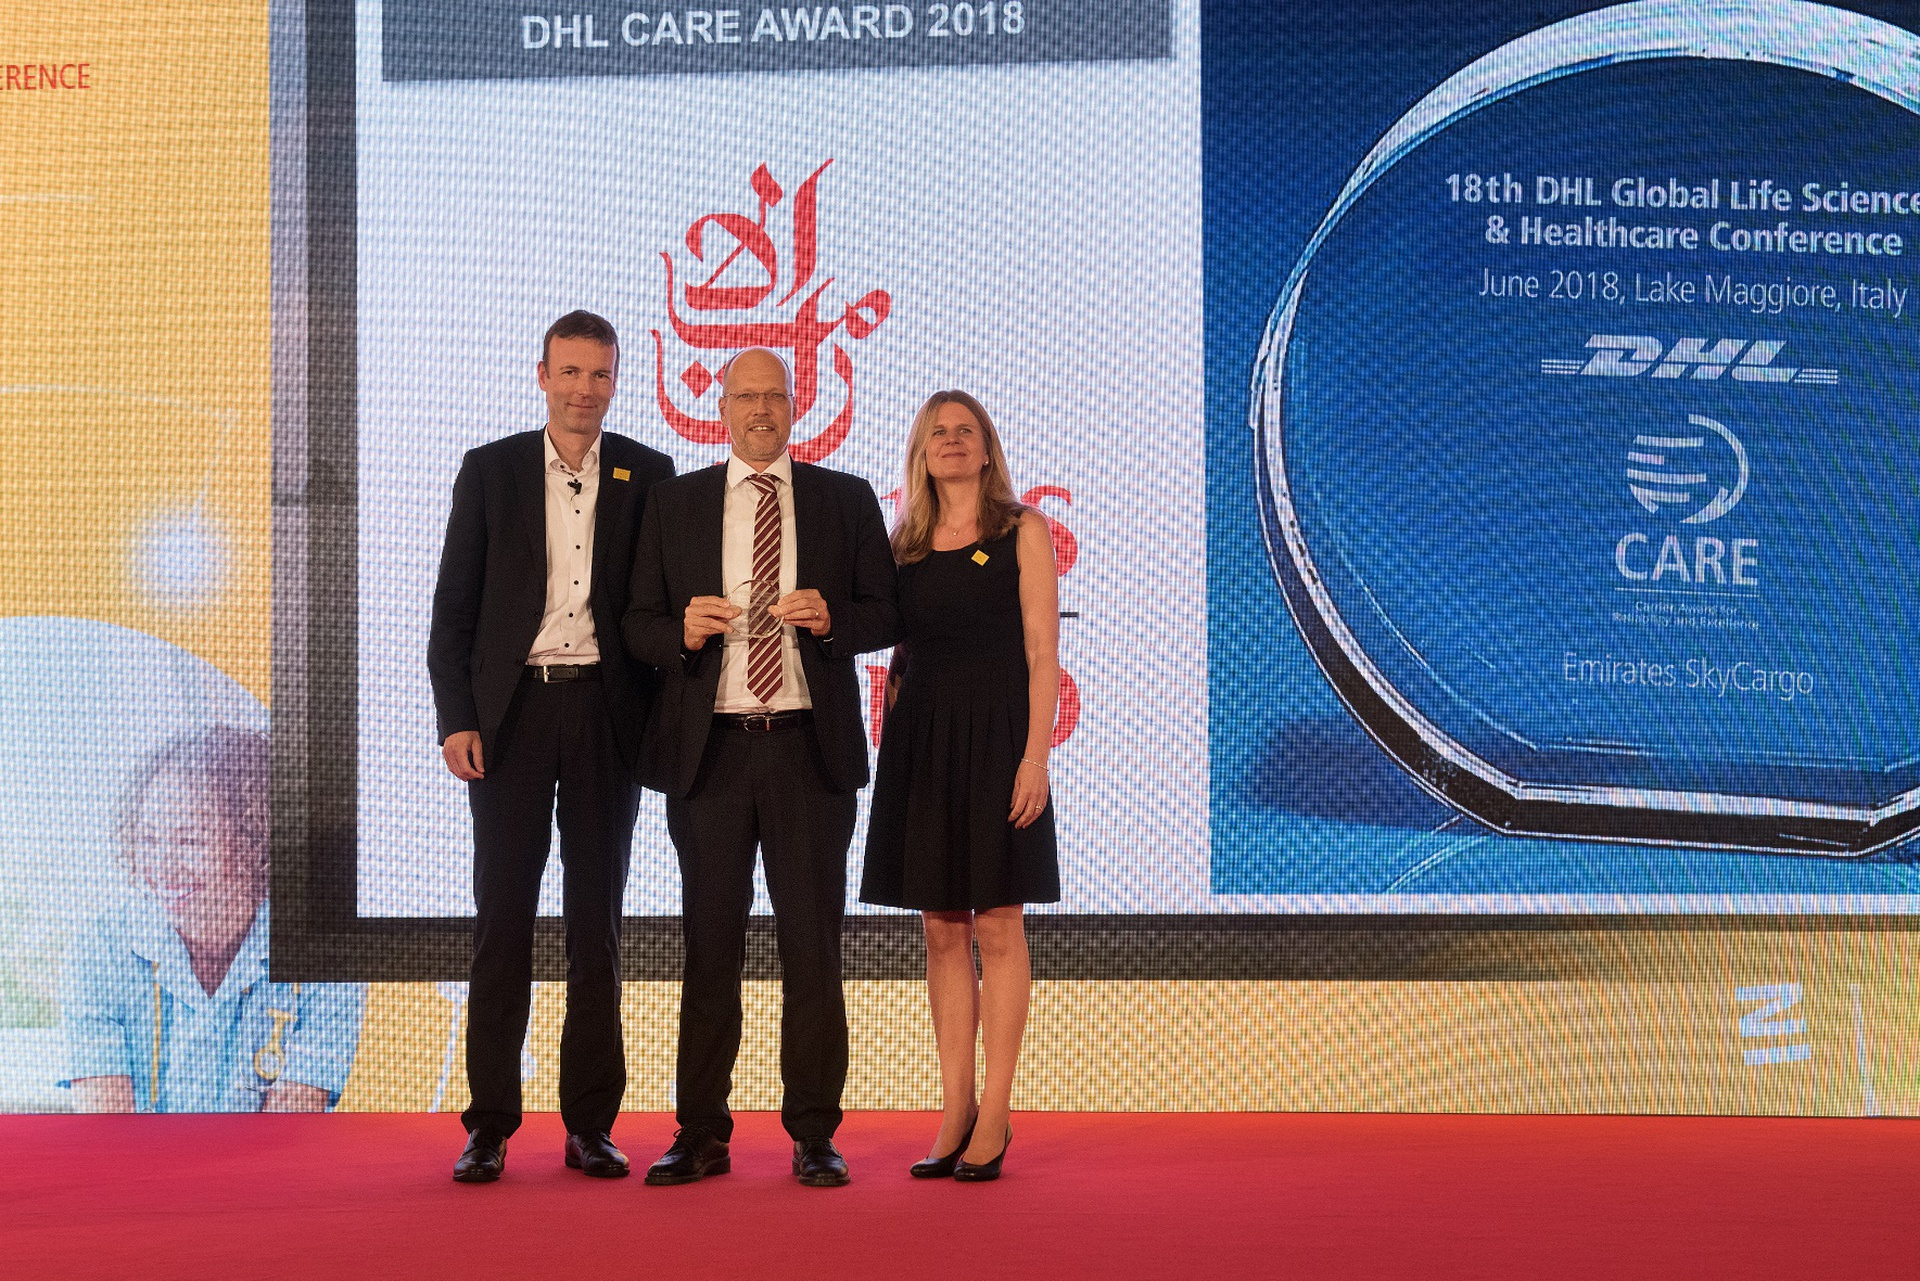 Henrik Ambak- Emirates Senior Vice President, Cargo Operations Worldwide (centre) receiving the award from Thomas George, CEO DHL Global Forwarding Europe (left) and Nina Heinz, Global Head of Network & Quality, DHL Global Forwarding (right)